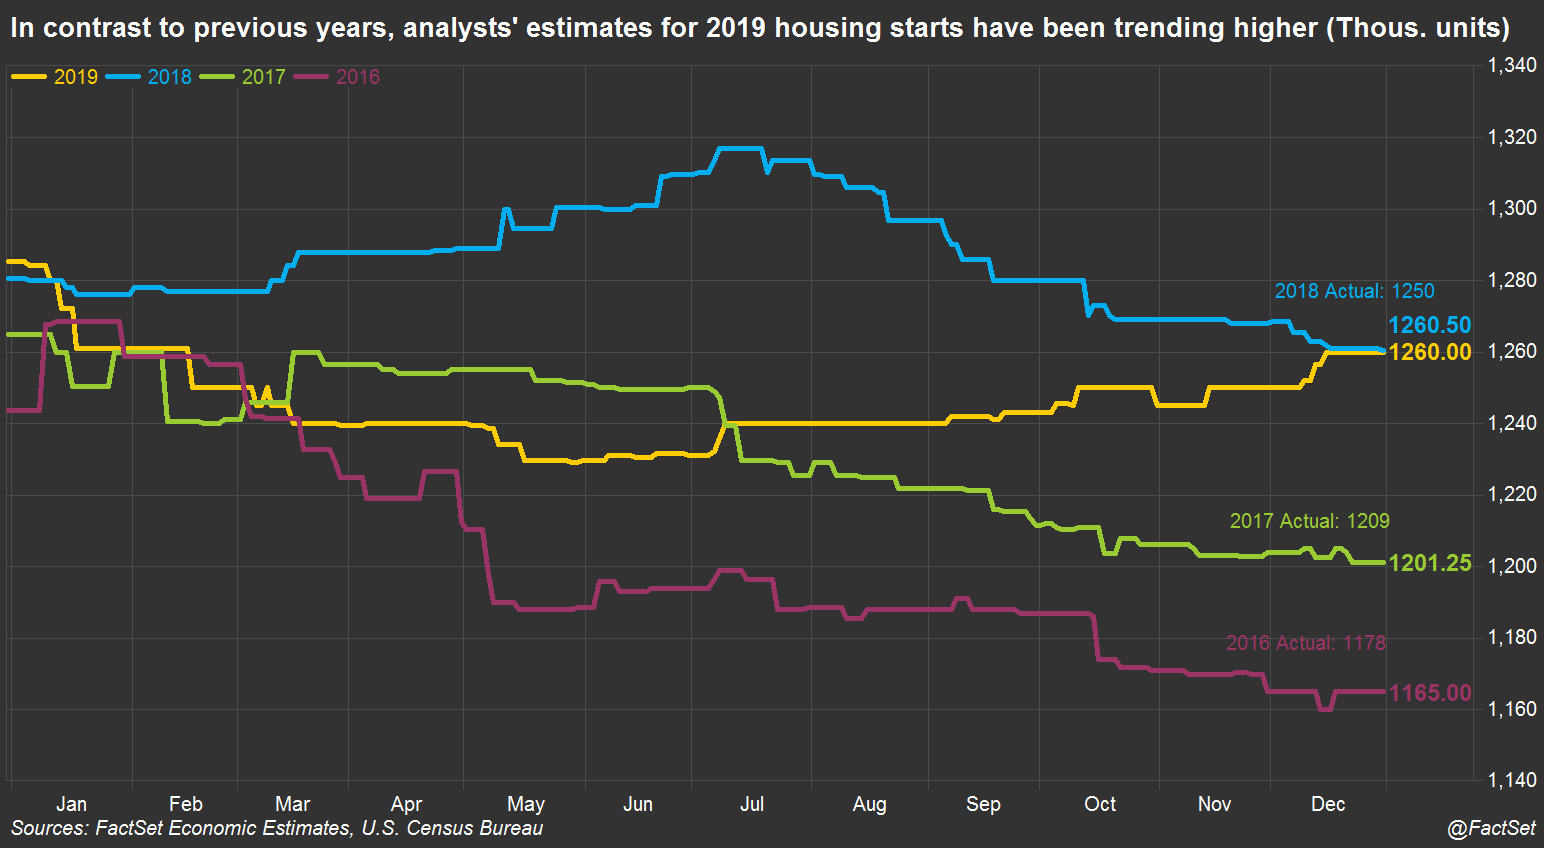 Historical housing starts estimates